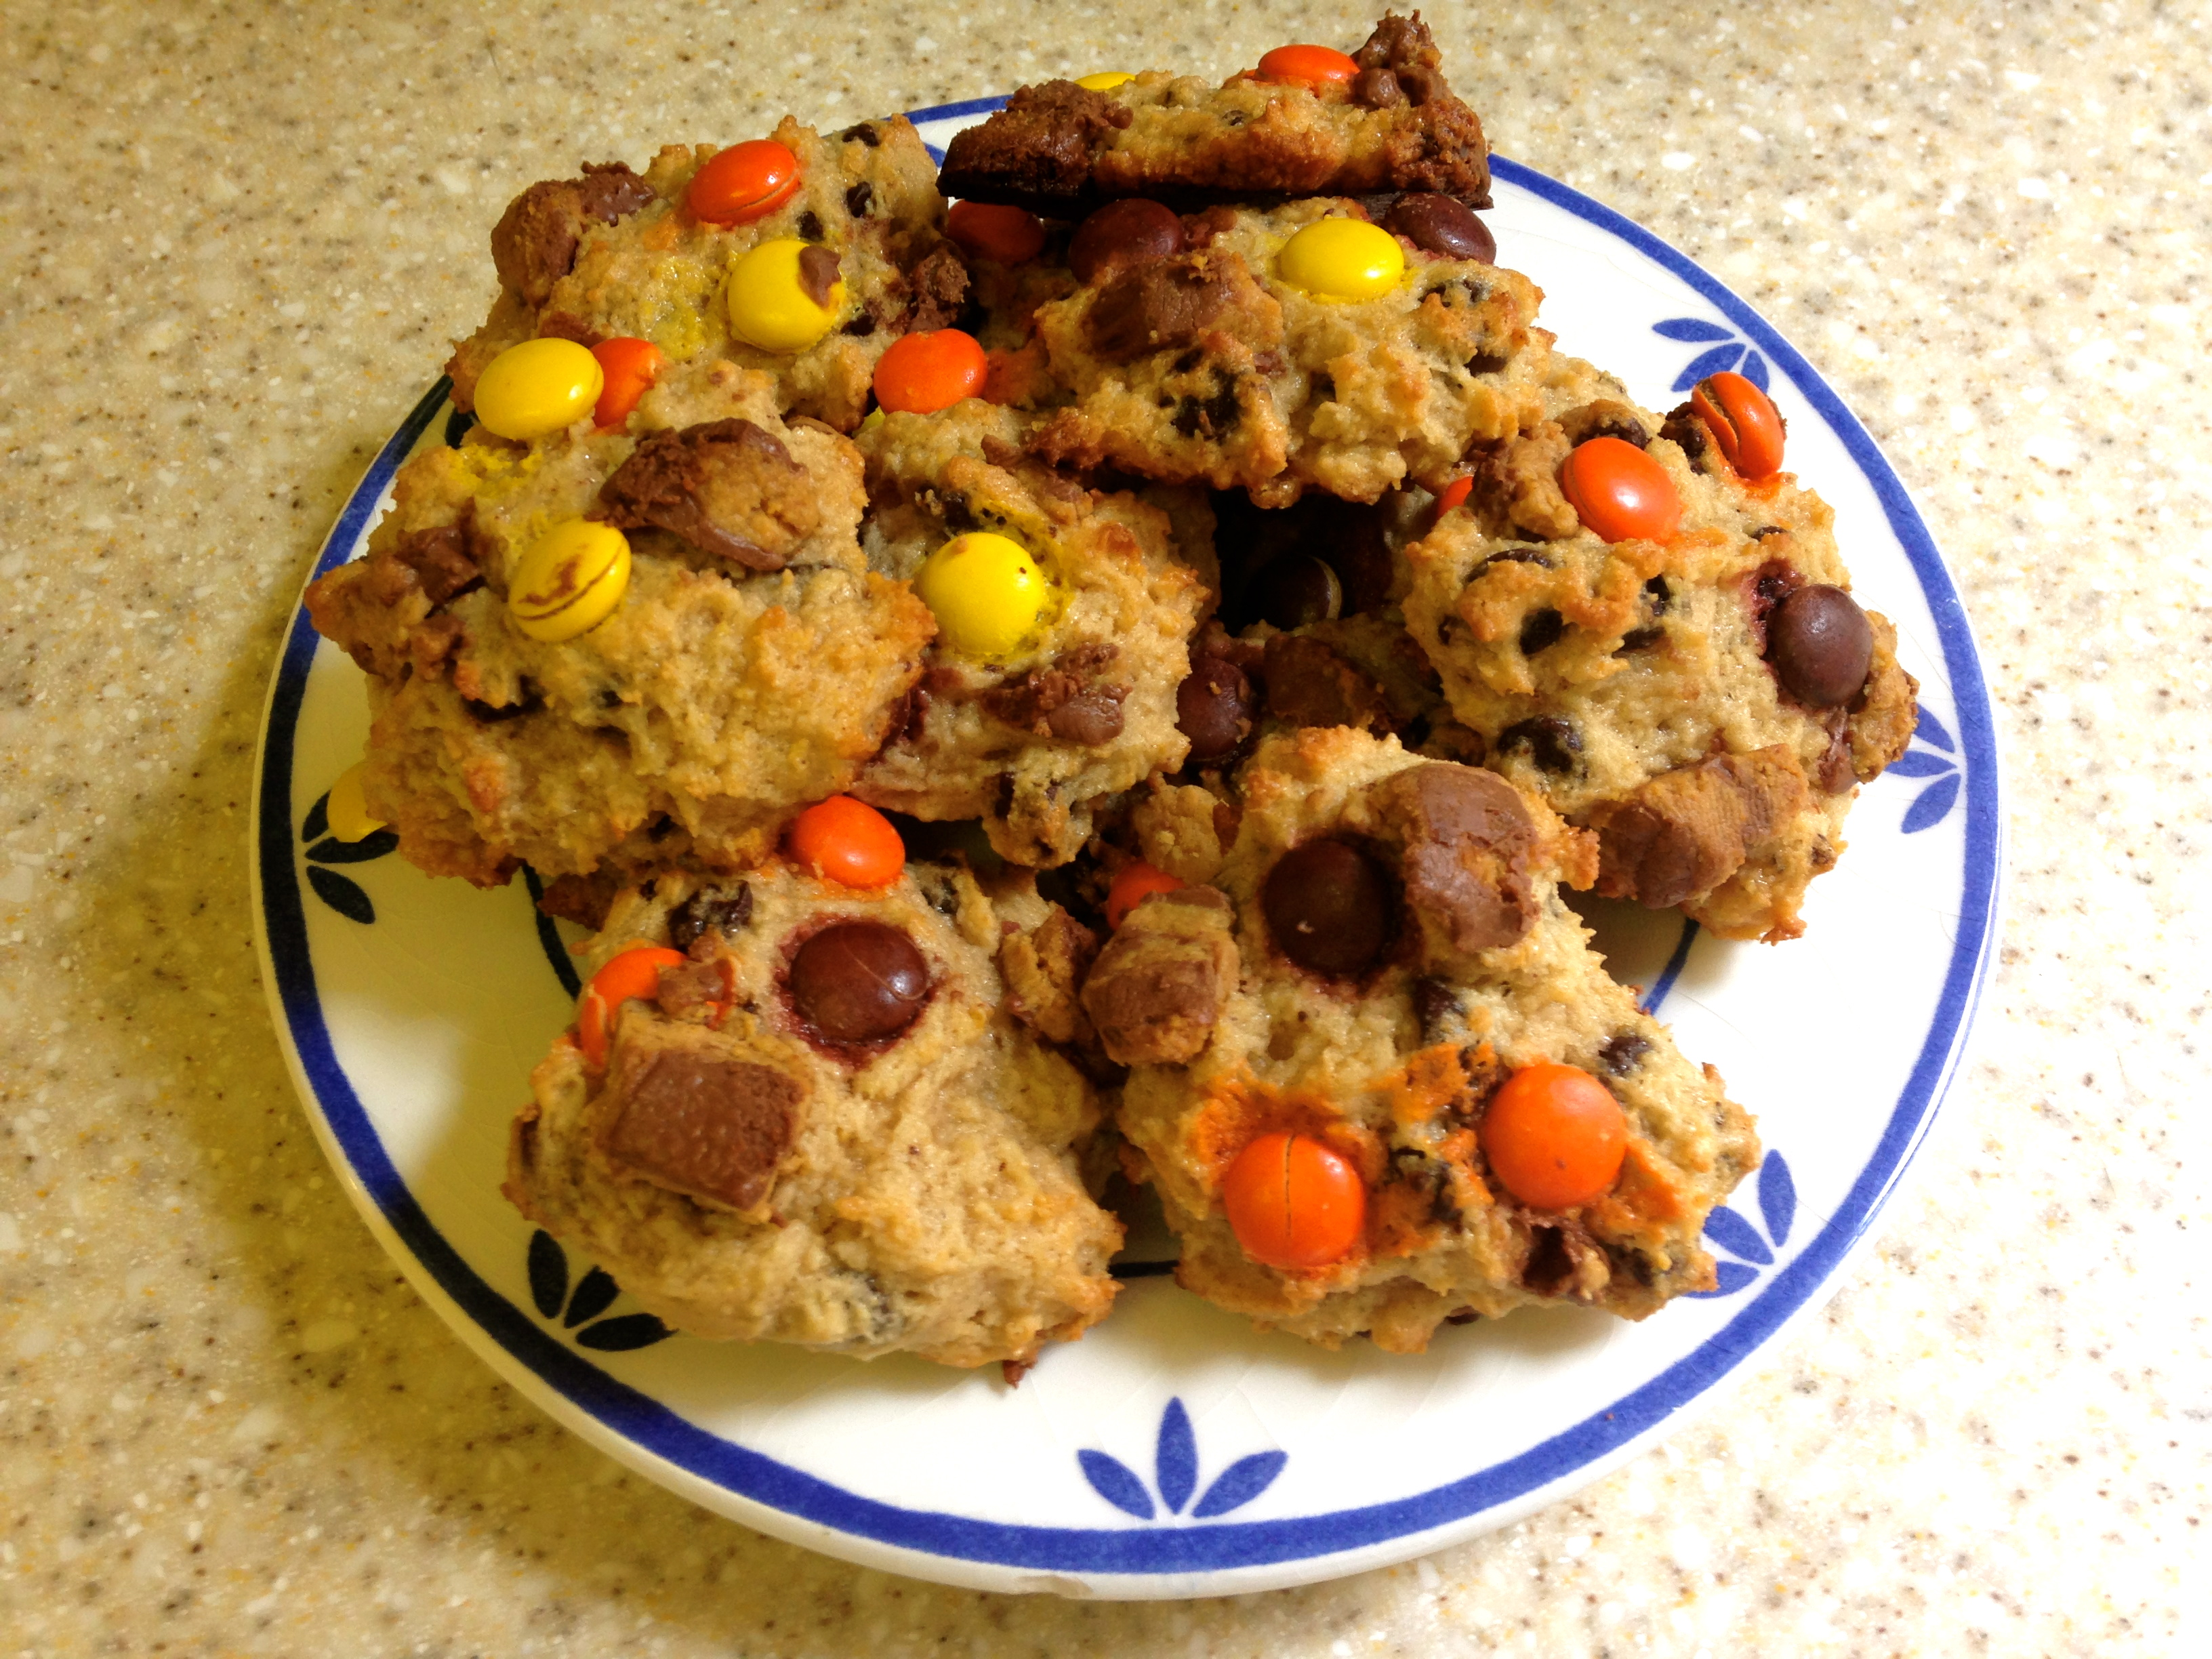 Double Reese's Cookies